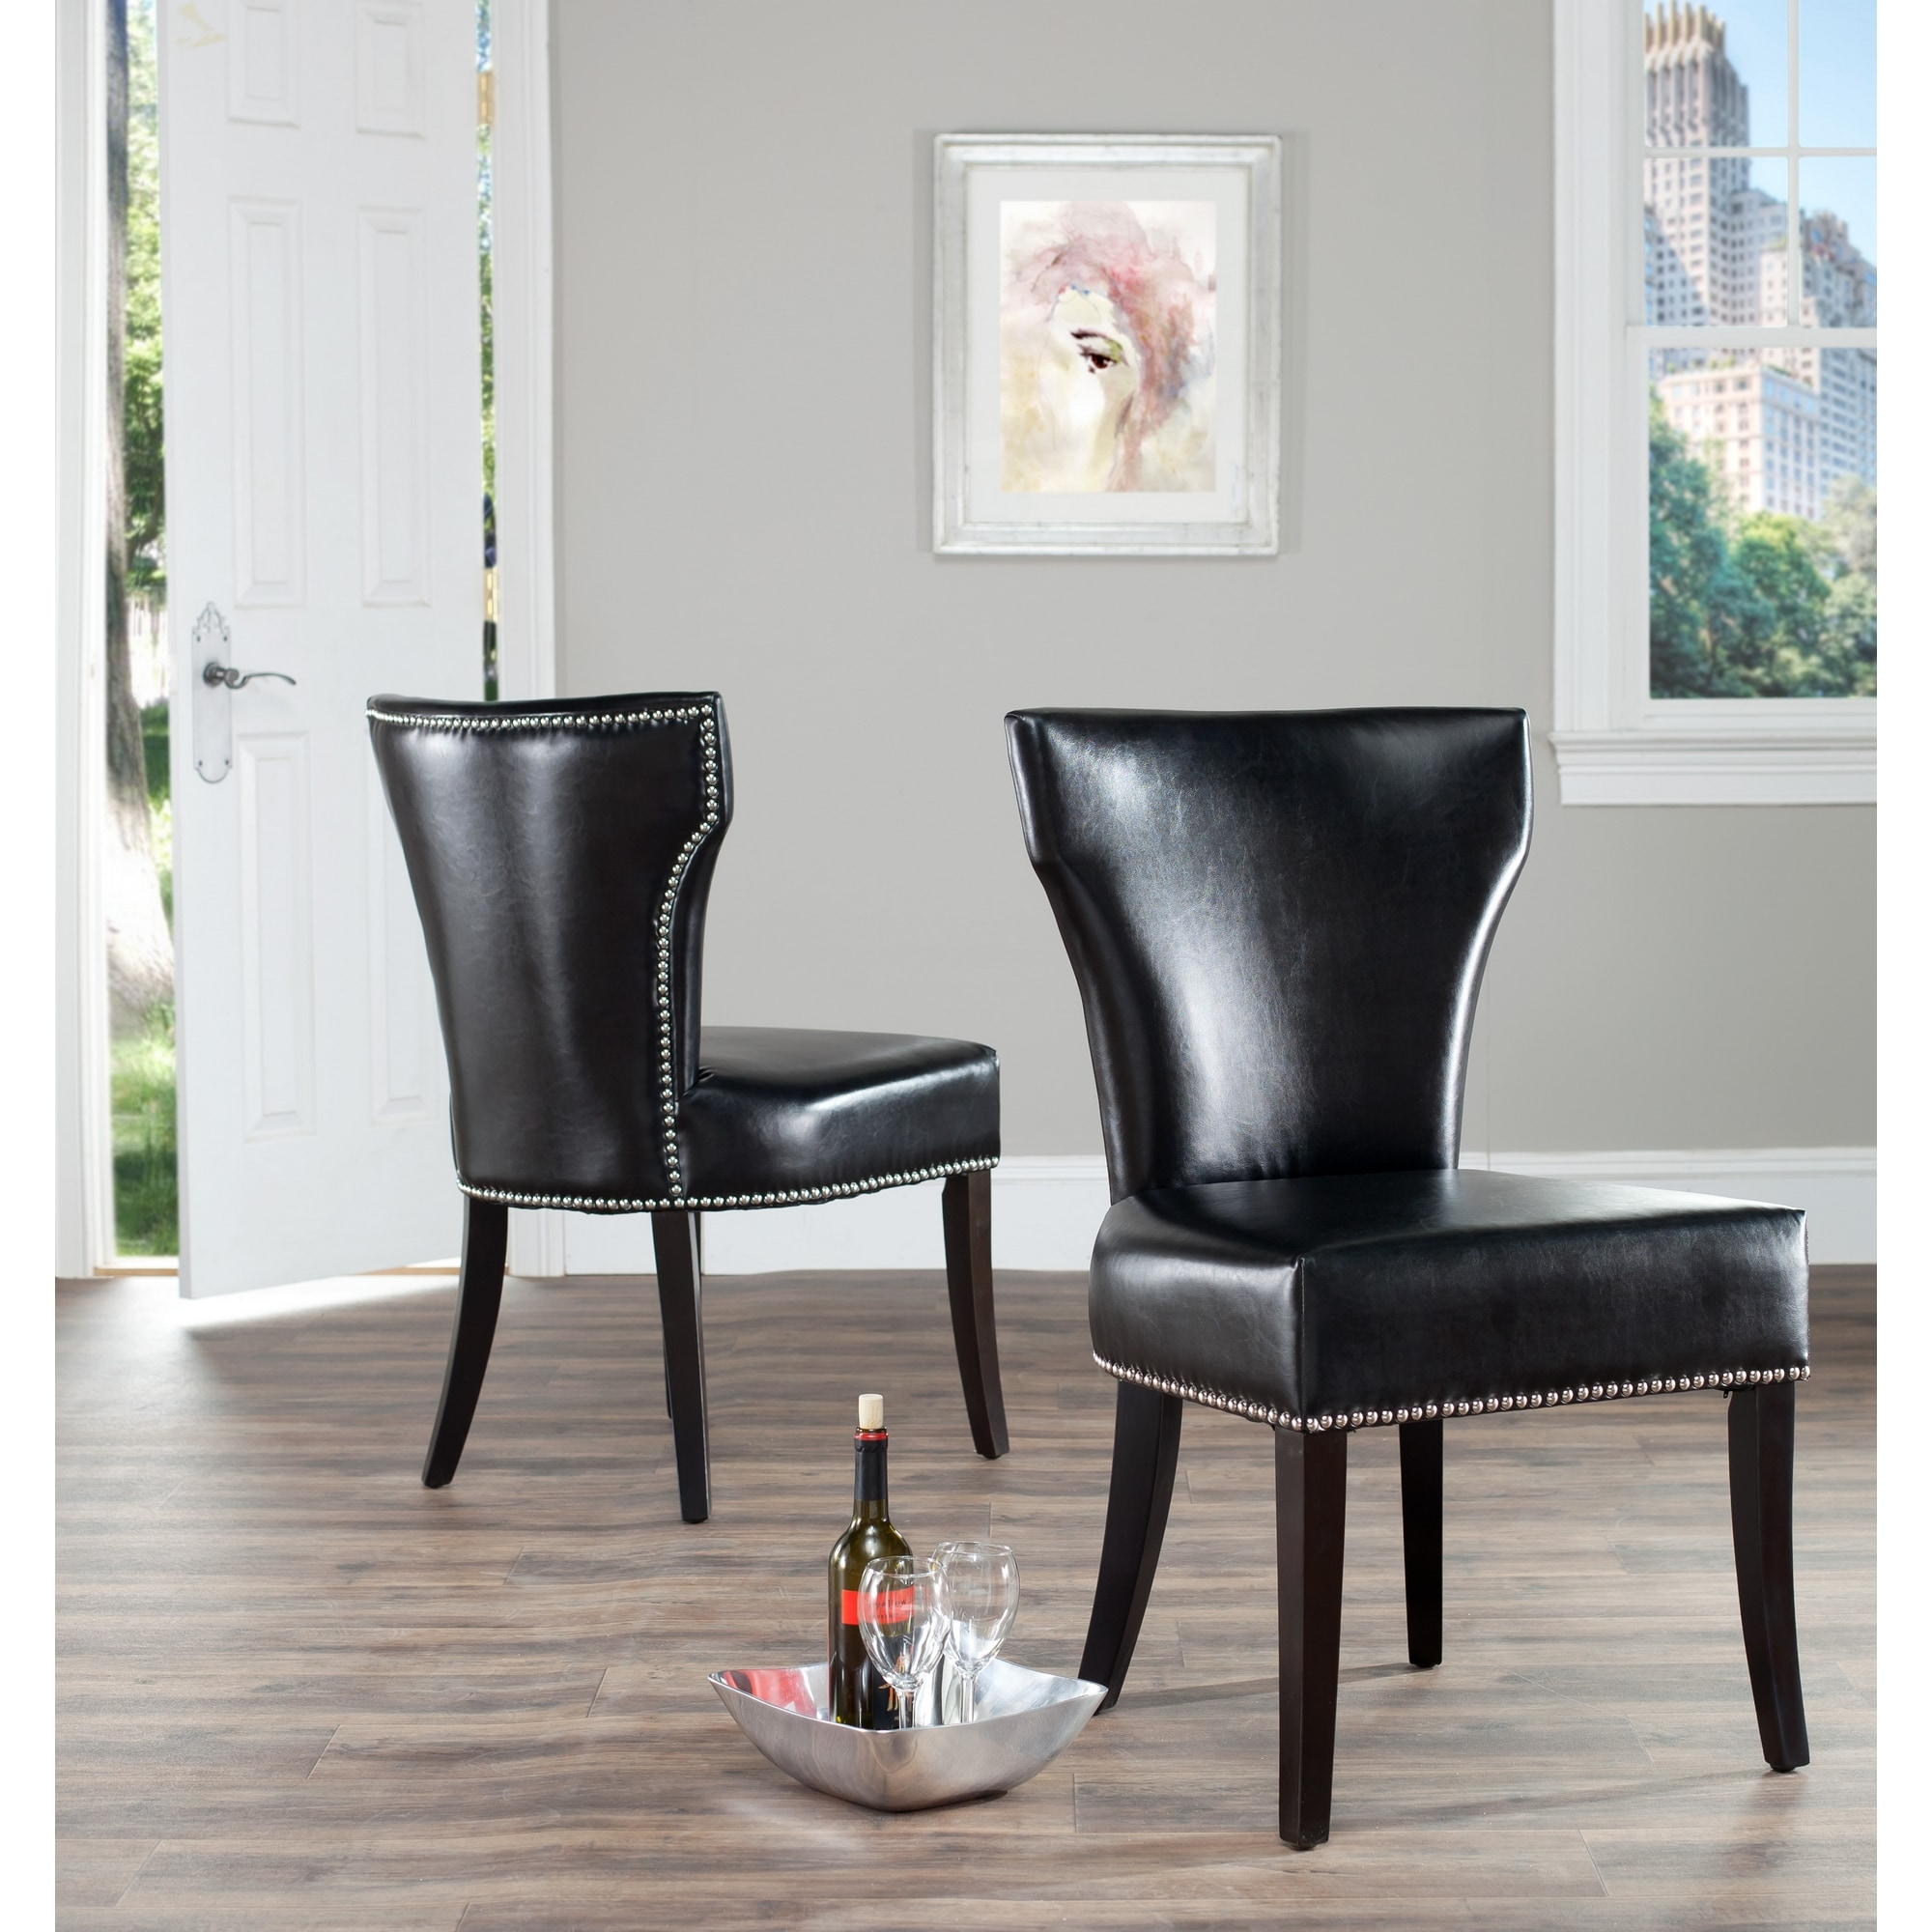 Safavieh Matty Black Leather Nailhead Dining Chairs Set